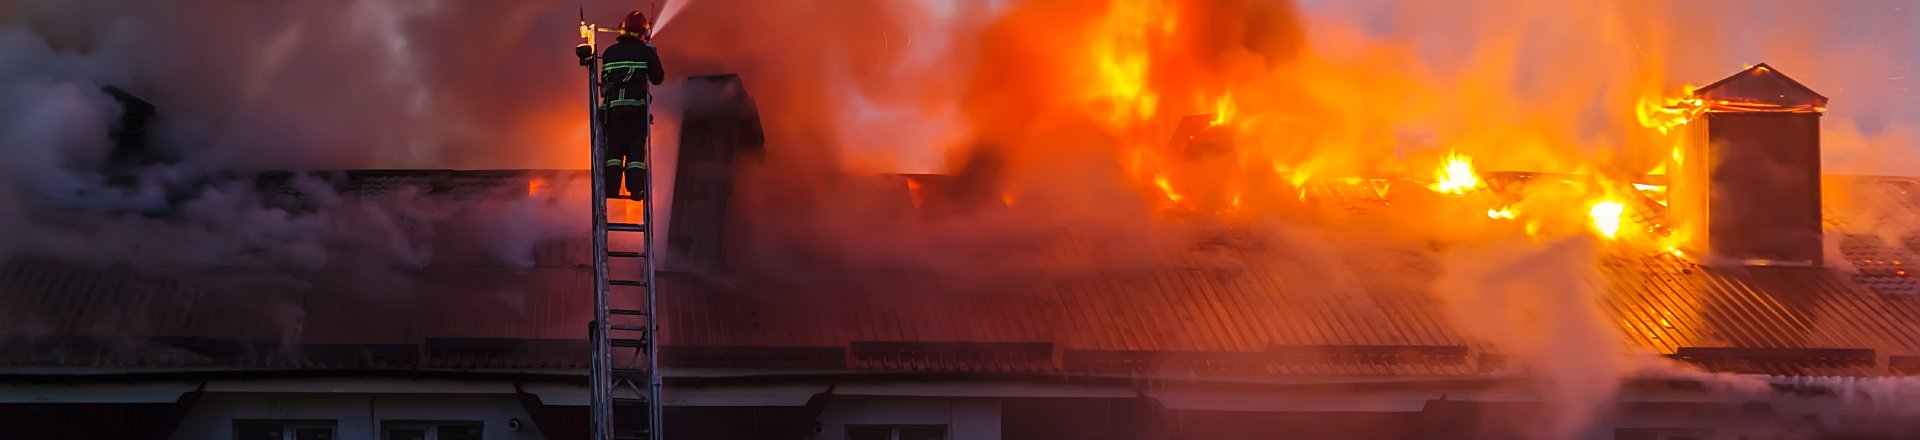 Fire In Apartments, Fireman Extinguishes Fire, Fires in Apartments / Hotels Lawsuit Claims Lawyer